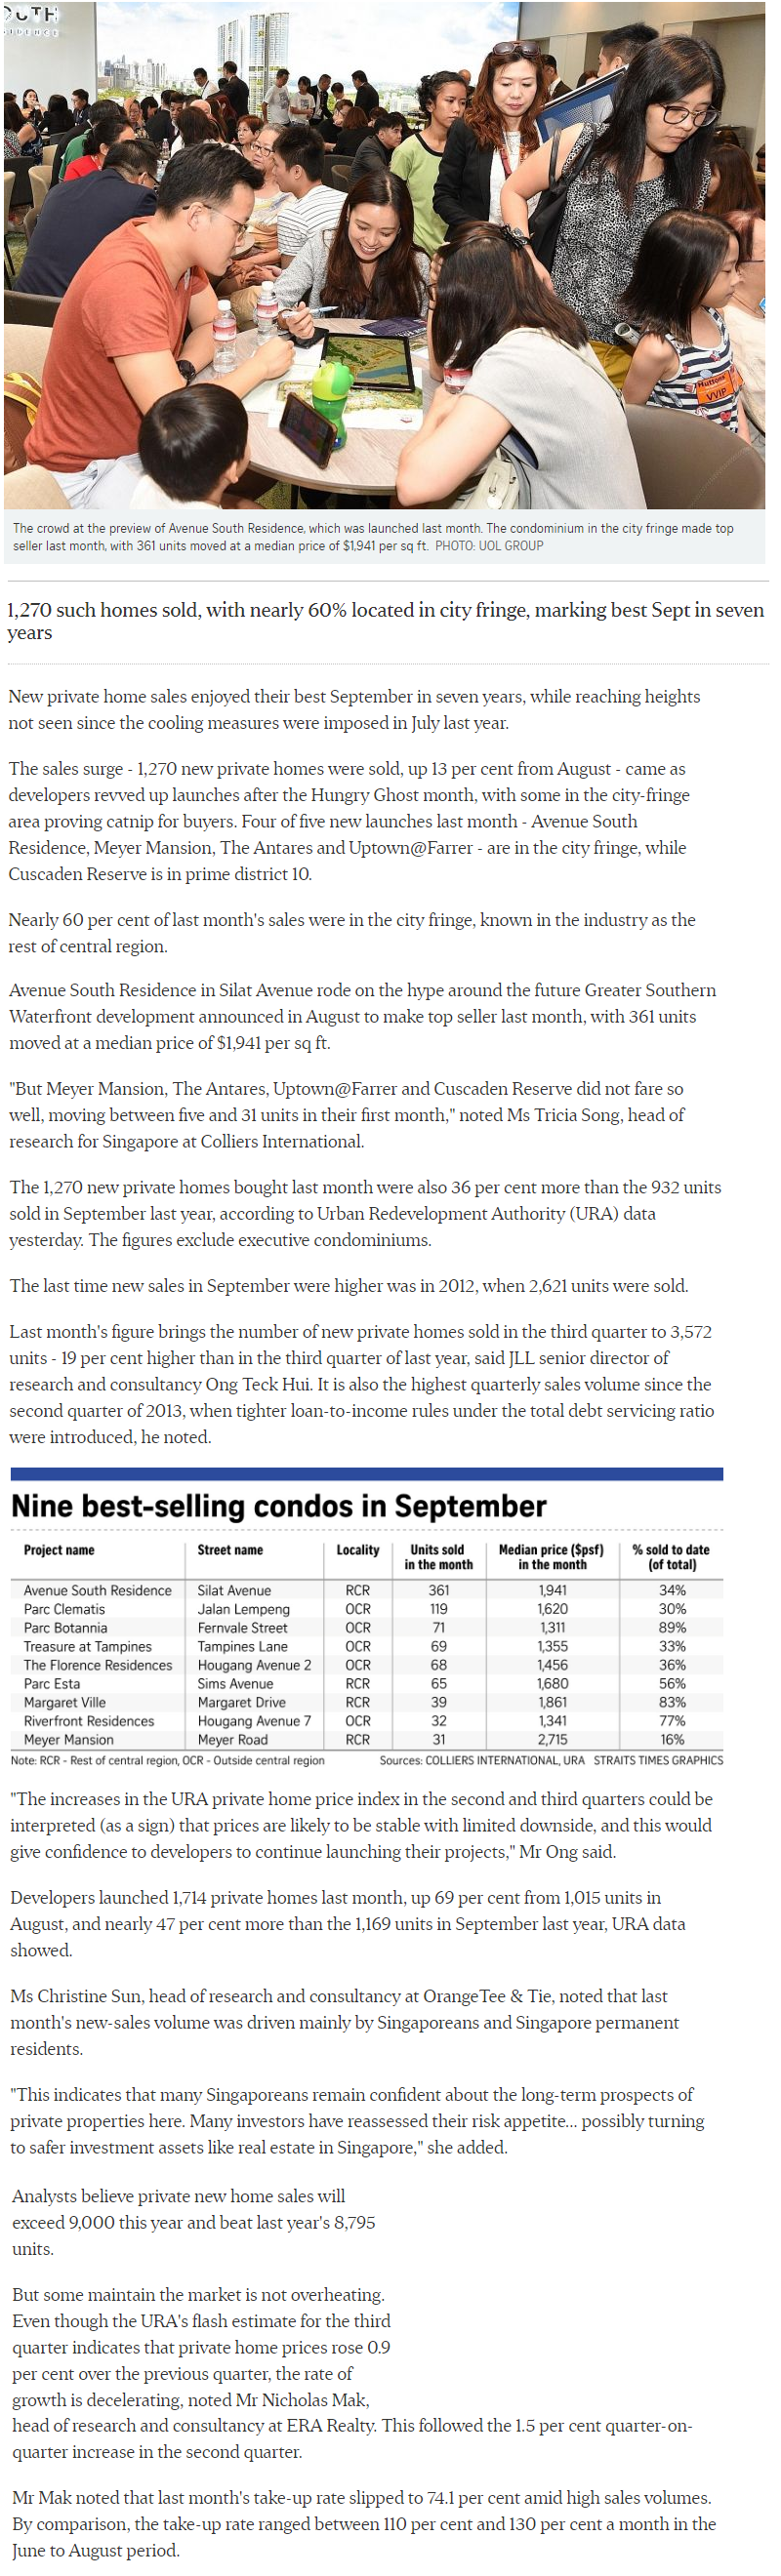 The Watergardens - New private Home Sales Hit A Hight In September